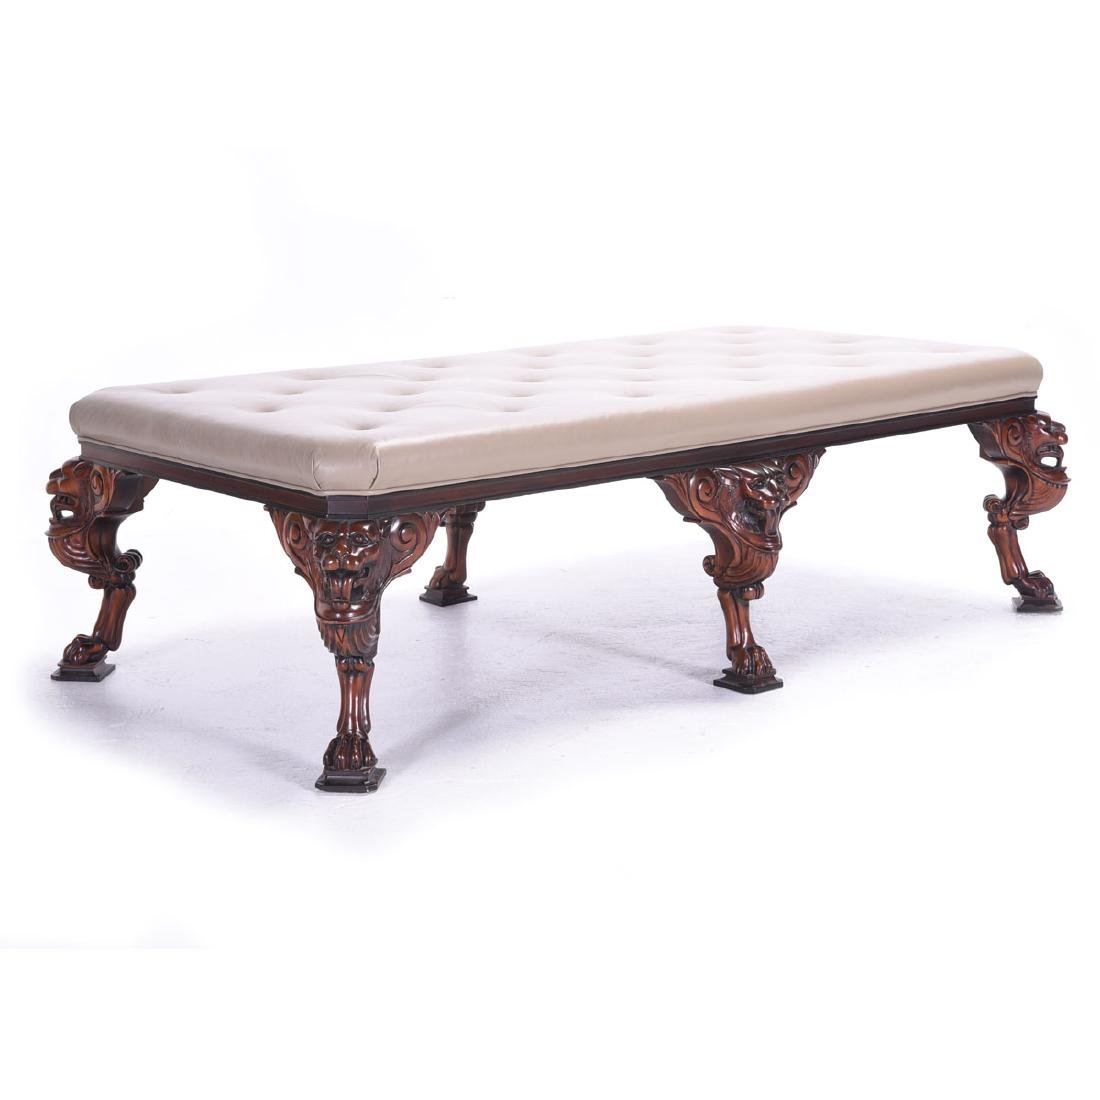 George II Style Hardwood Upholstered Leather Tufted